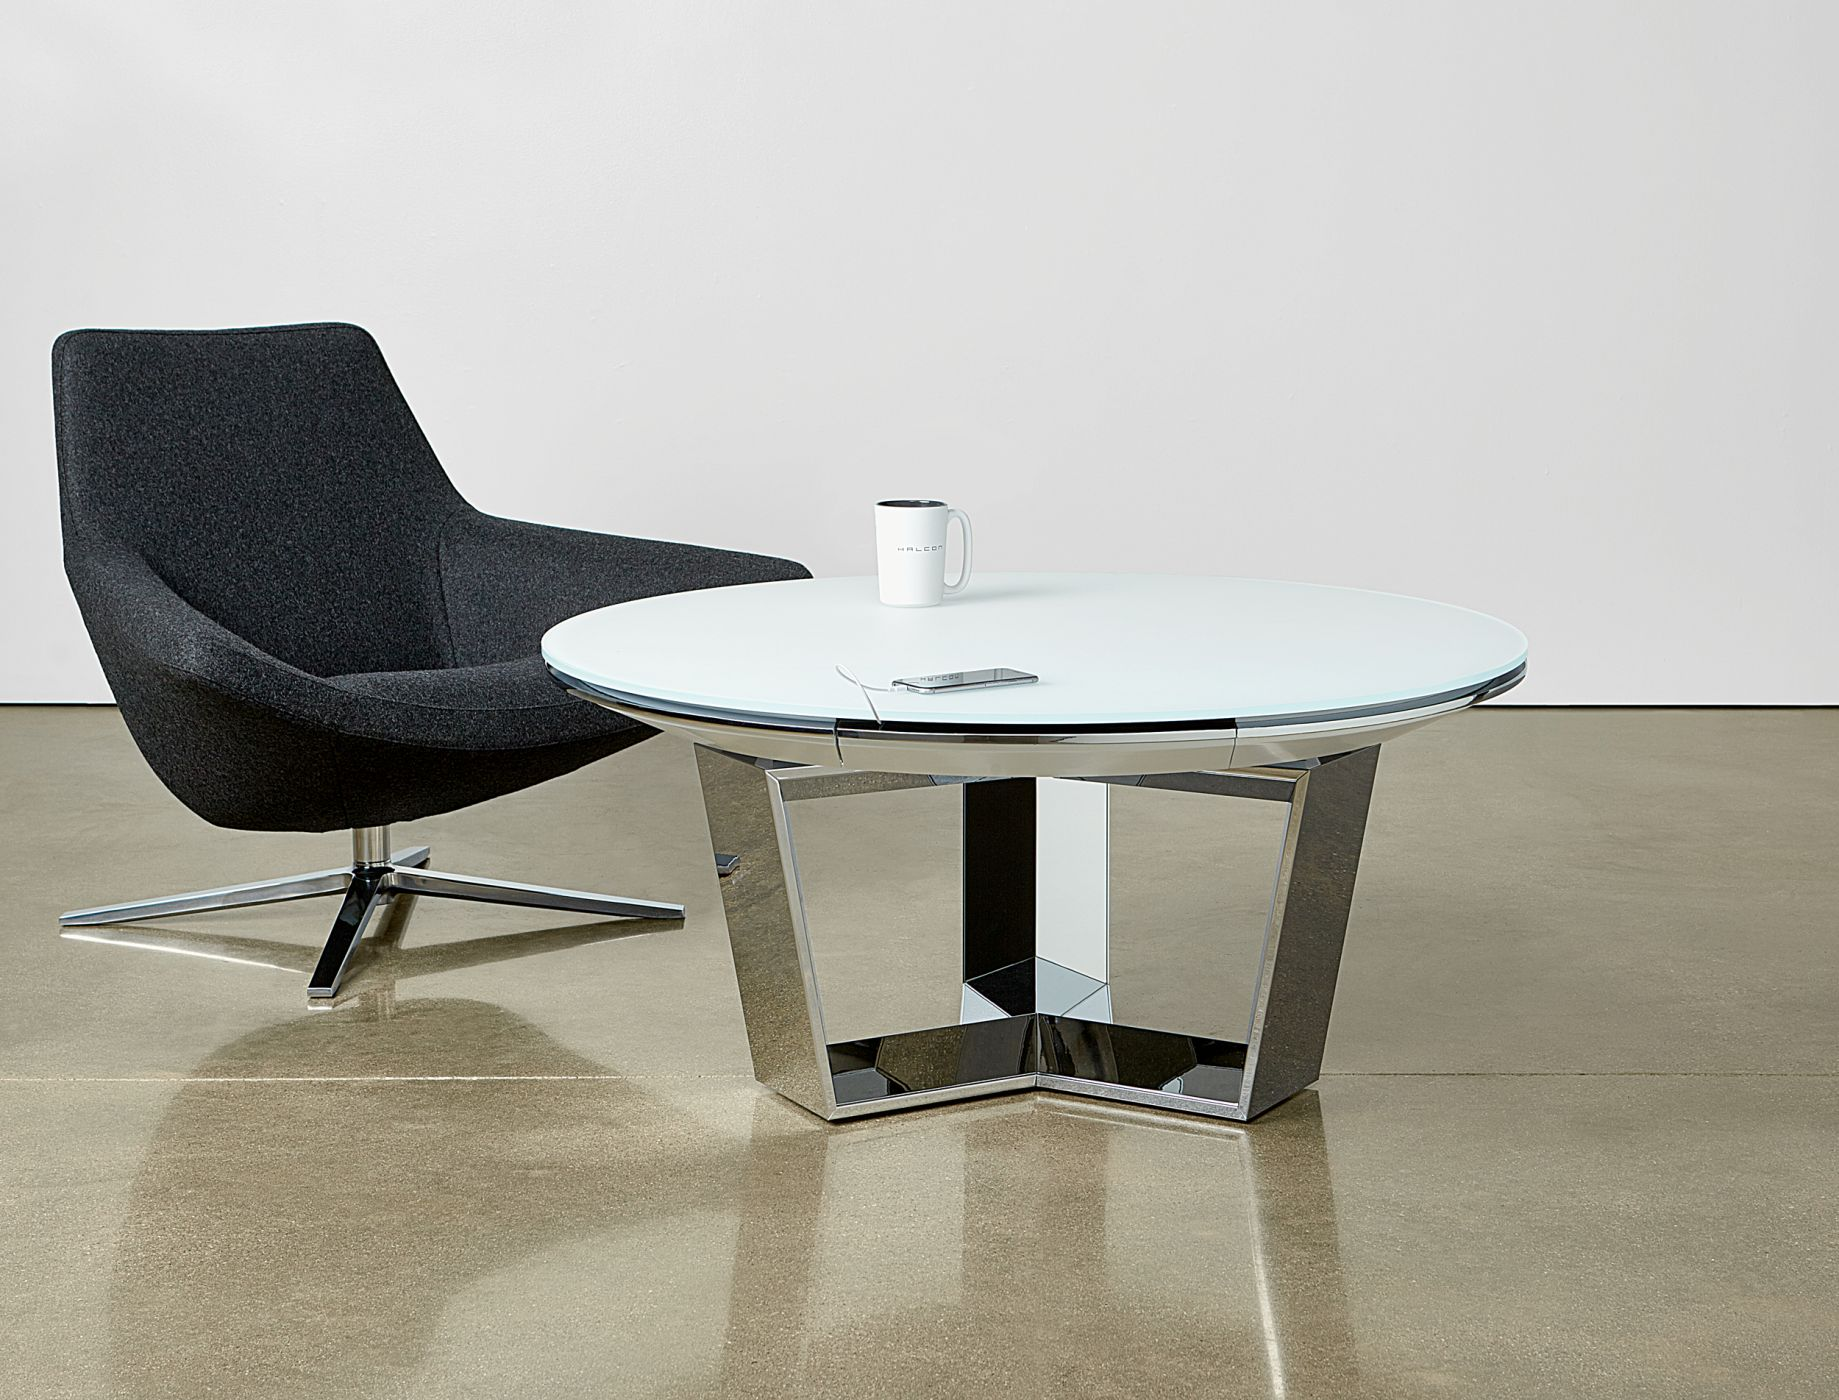 Mesa occasional tables deliver innovative beauty and connectivity to informal meeting spaces.